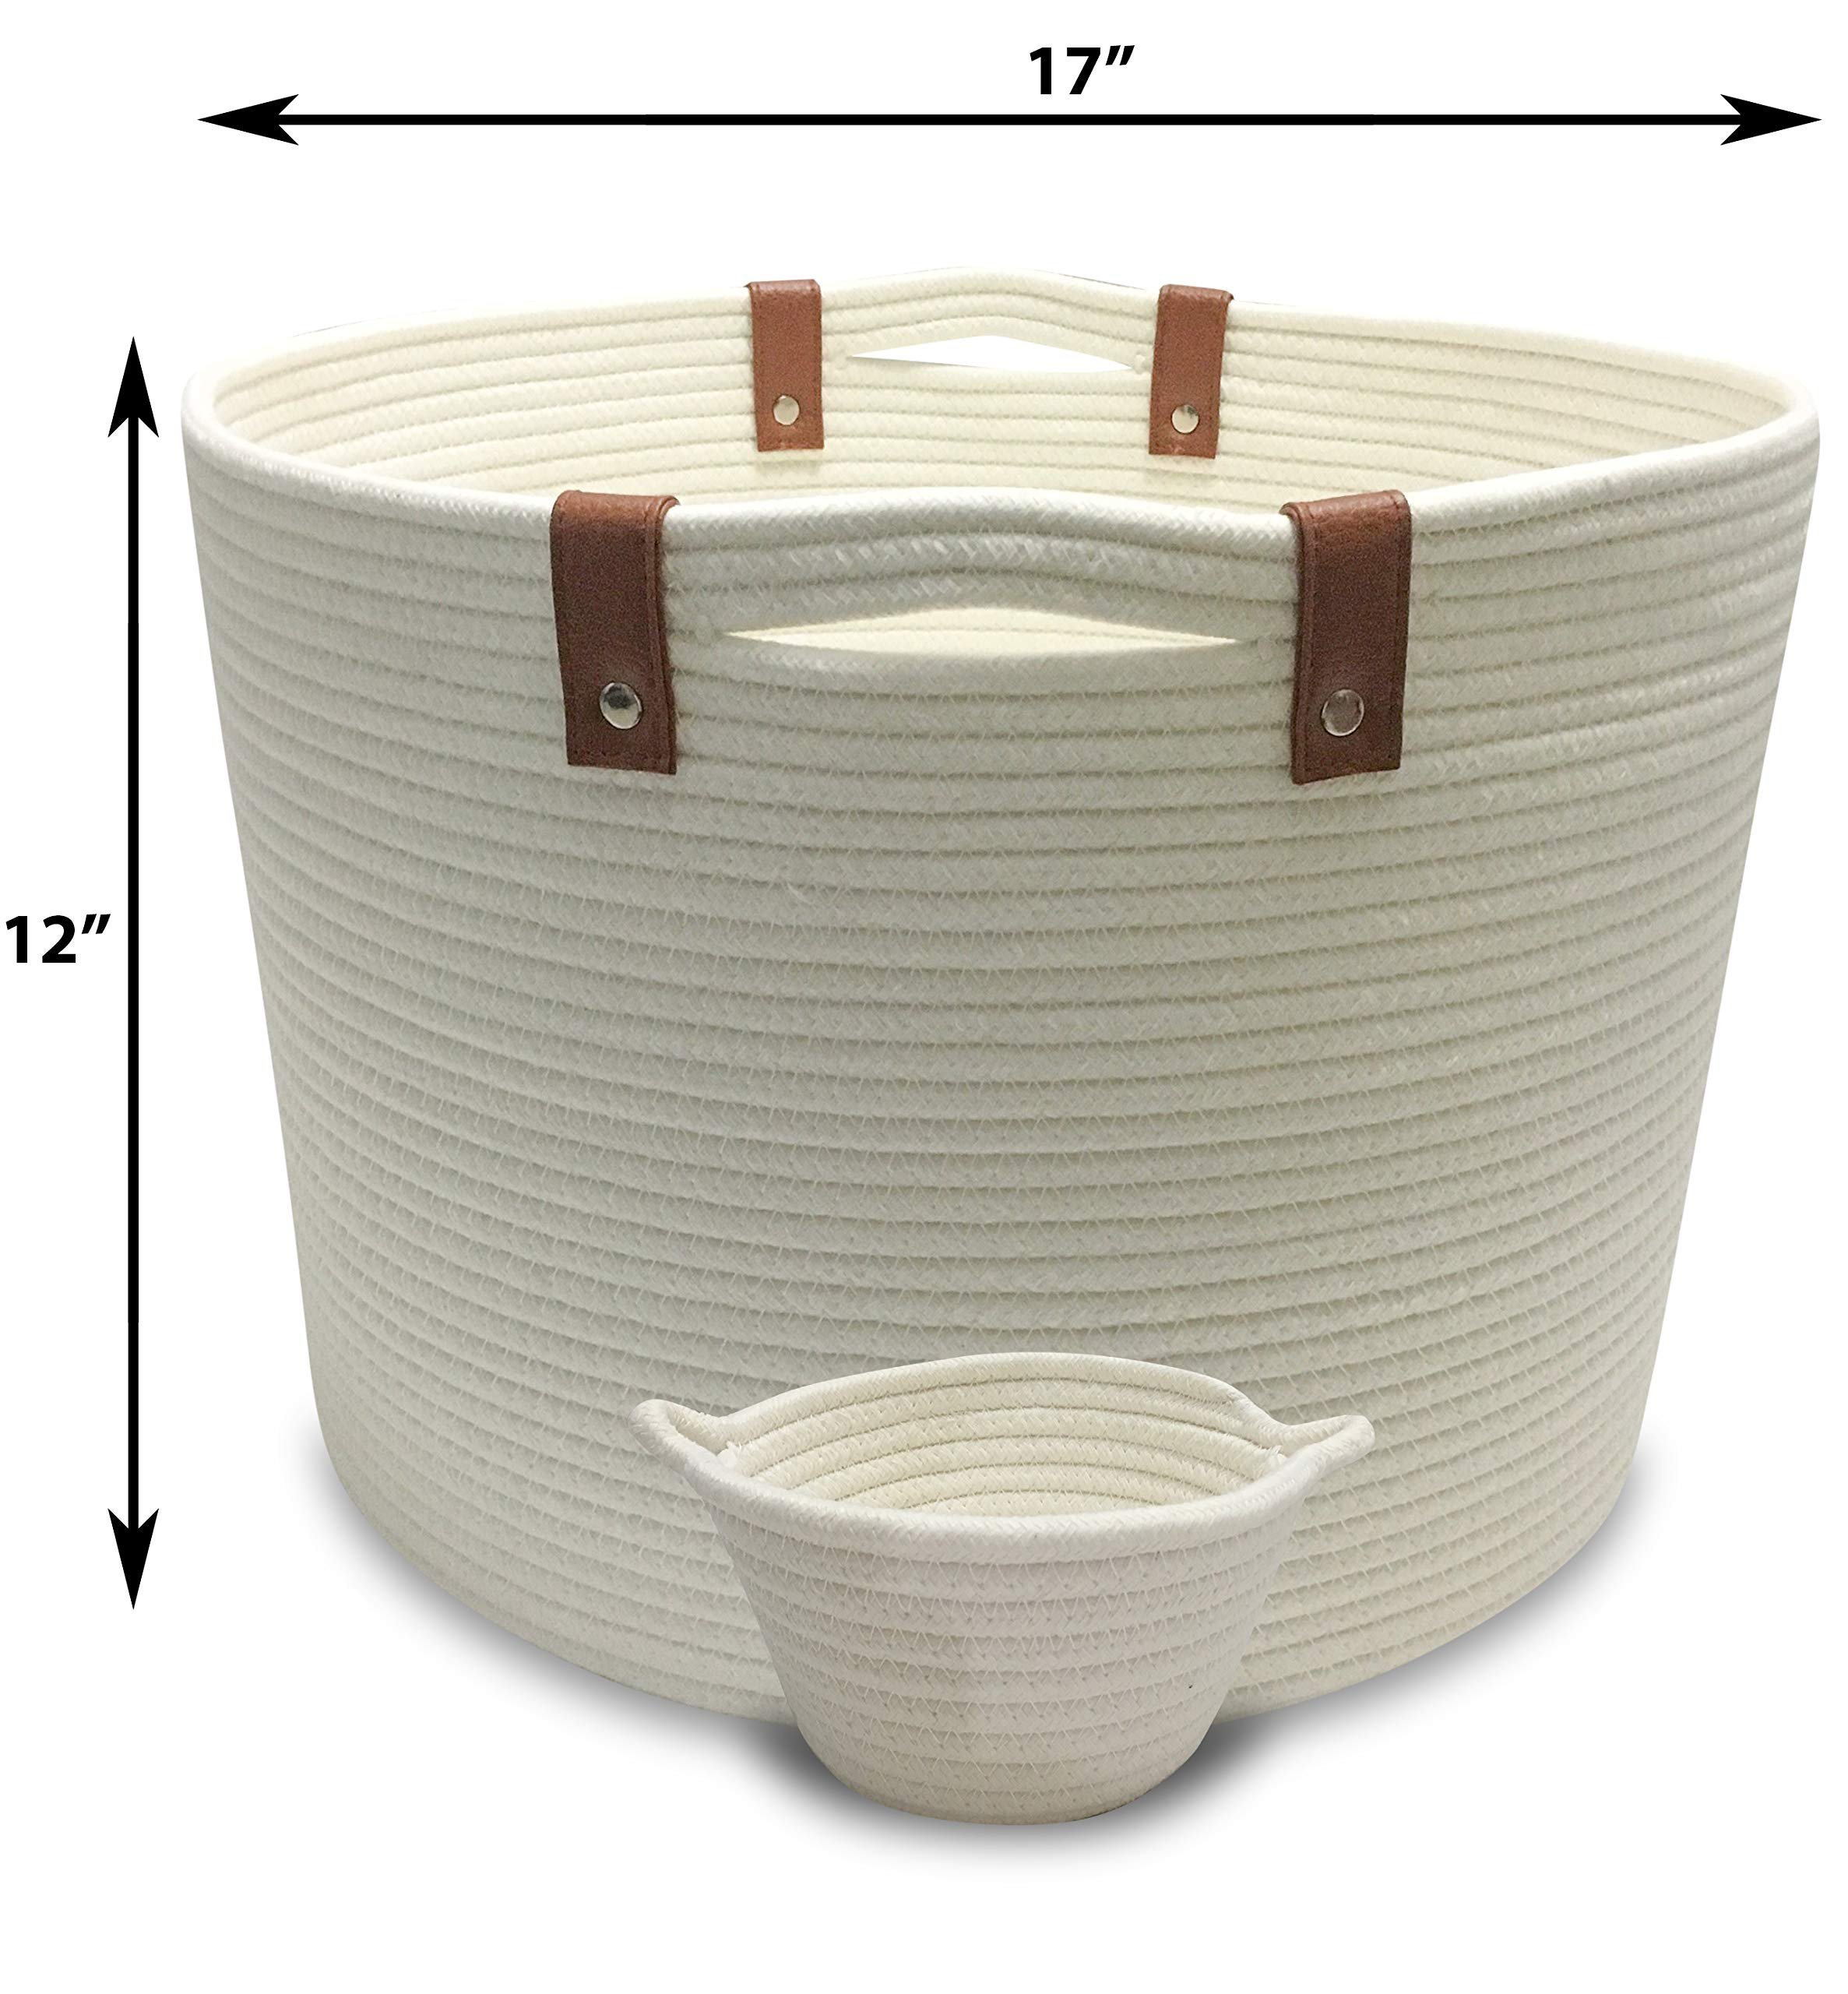 Woven Laundry Basket 17'' x 12'' | Woven Baskets for Storage are Ideal as Blankets Basket or Toy Basket | Our Cotton Rope Basket are large storage baskets with Mini Round Basket for Keys or knick-knacks